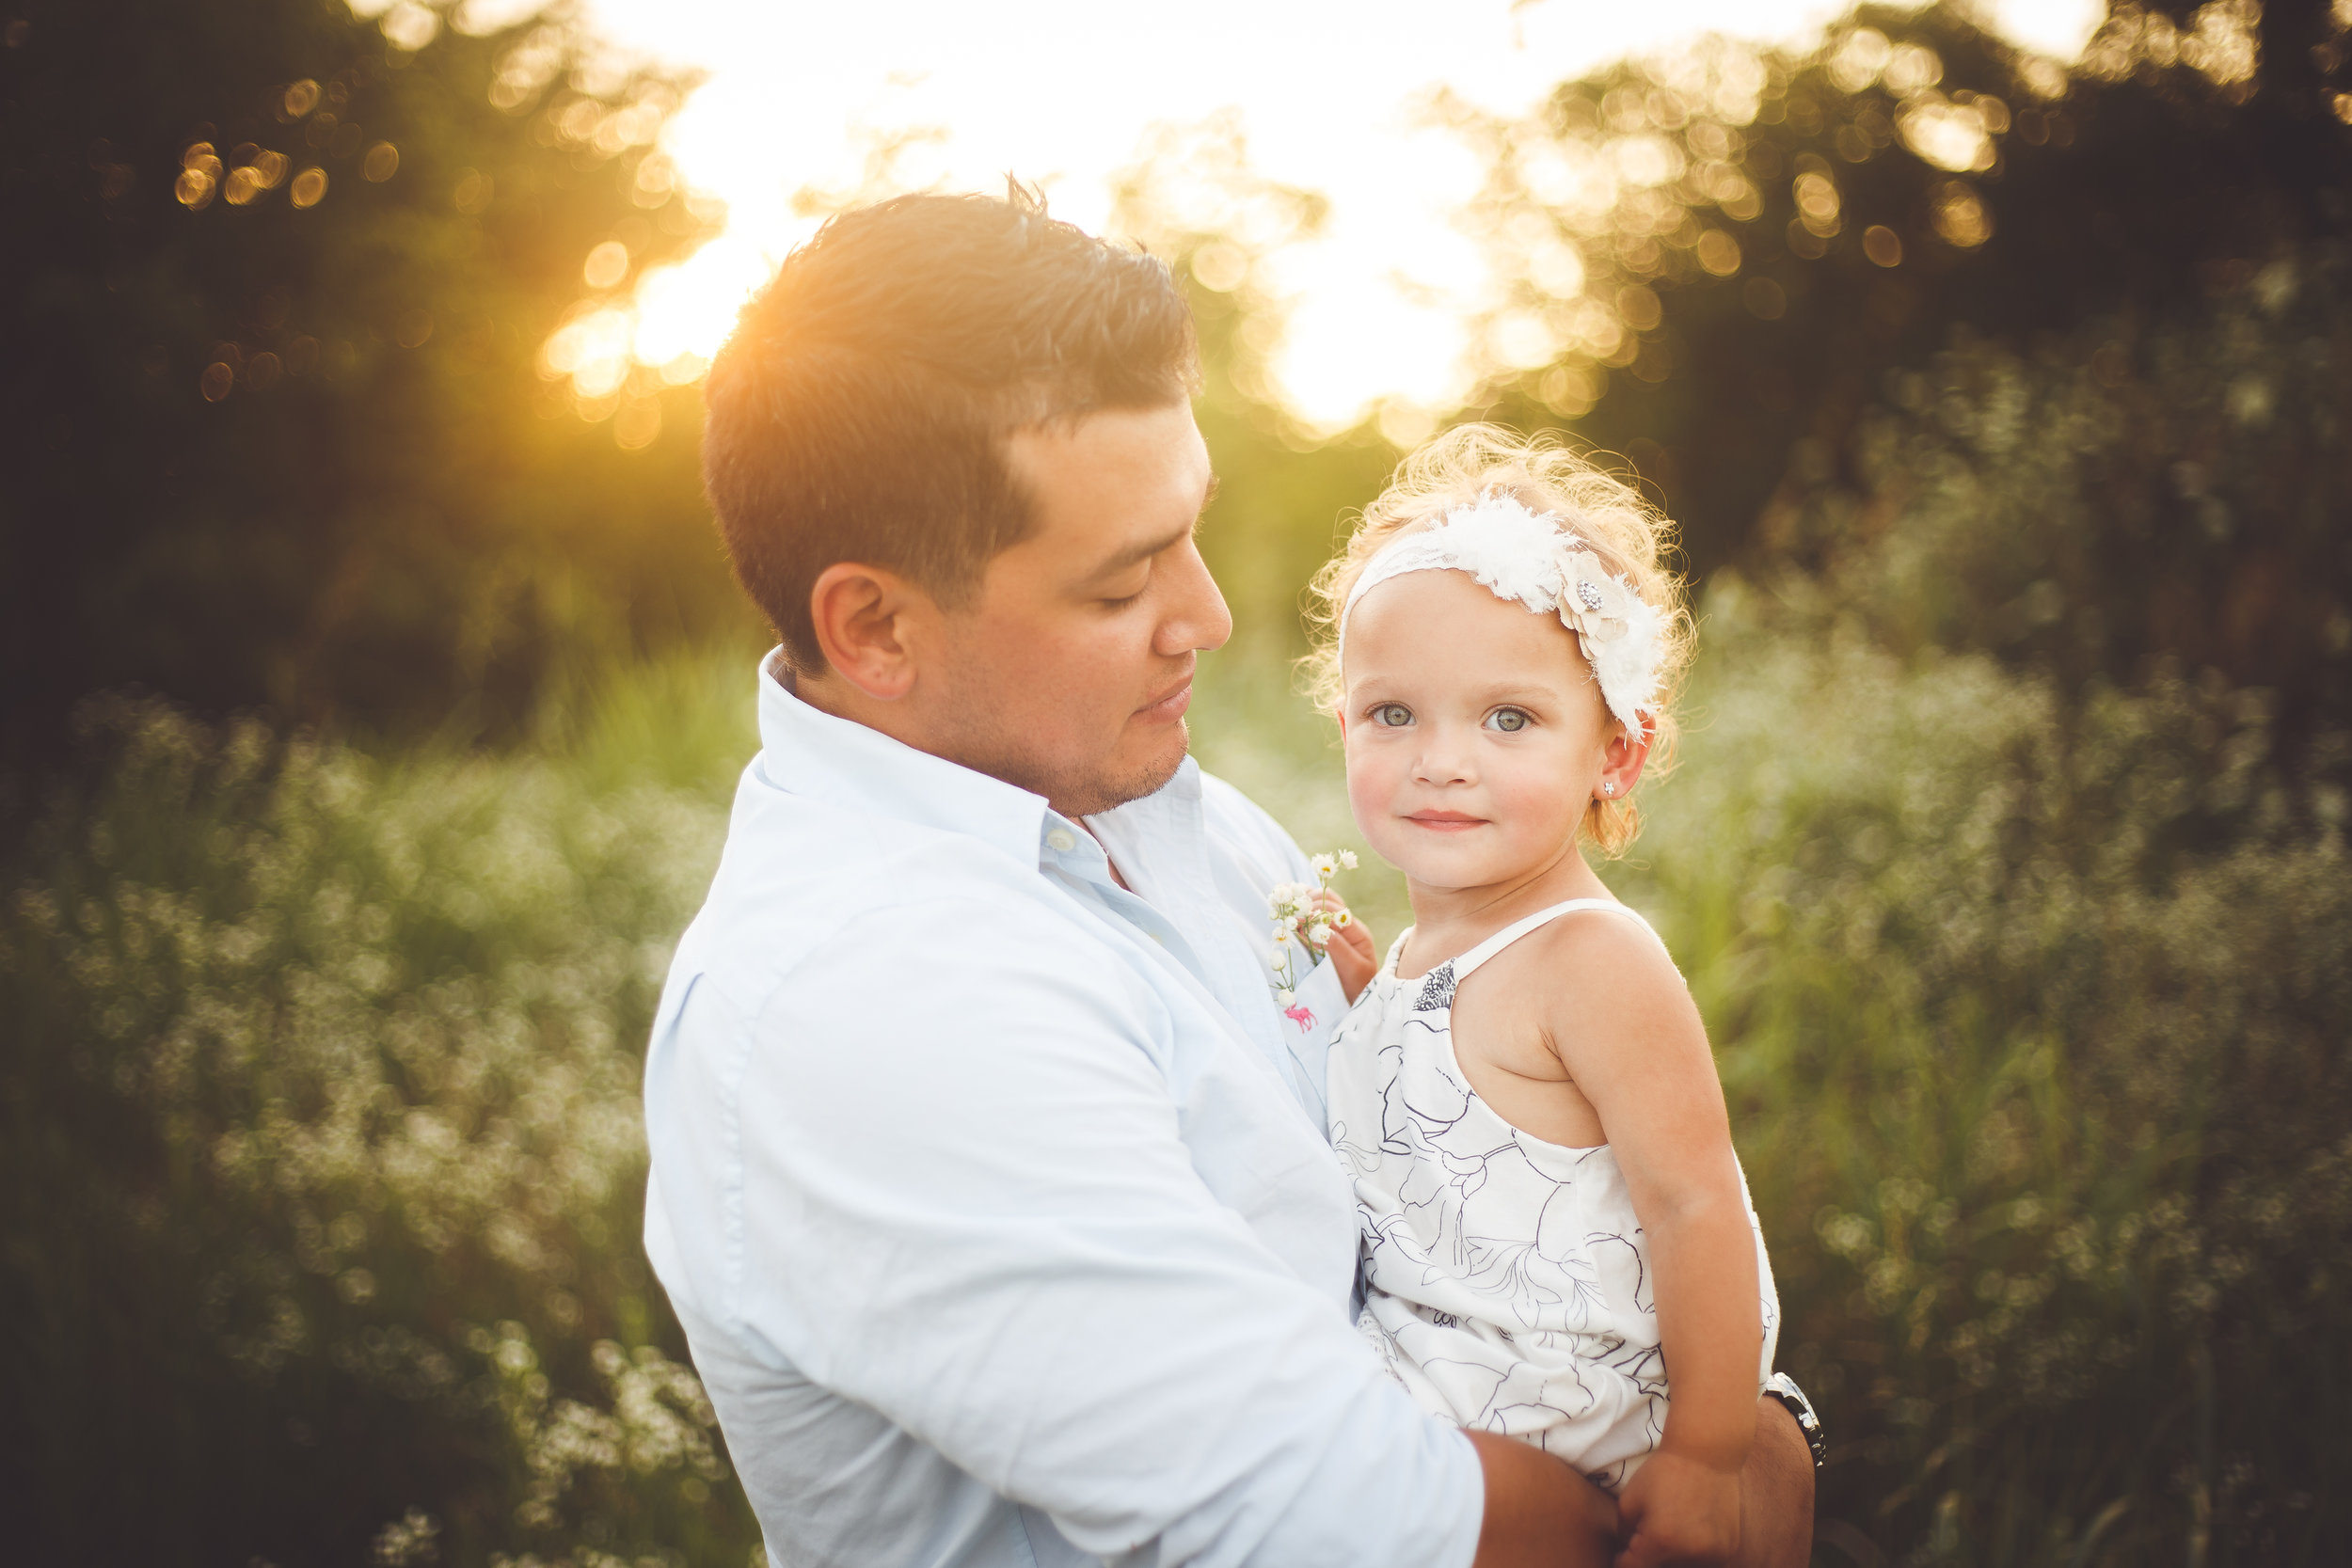 A younf father holds his beautiful young daughter wearing a white headband in his arms